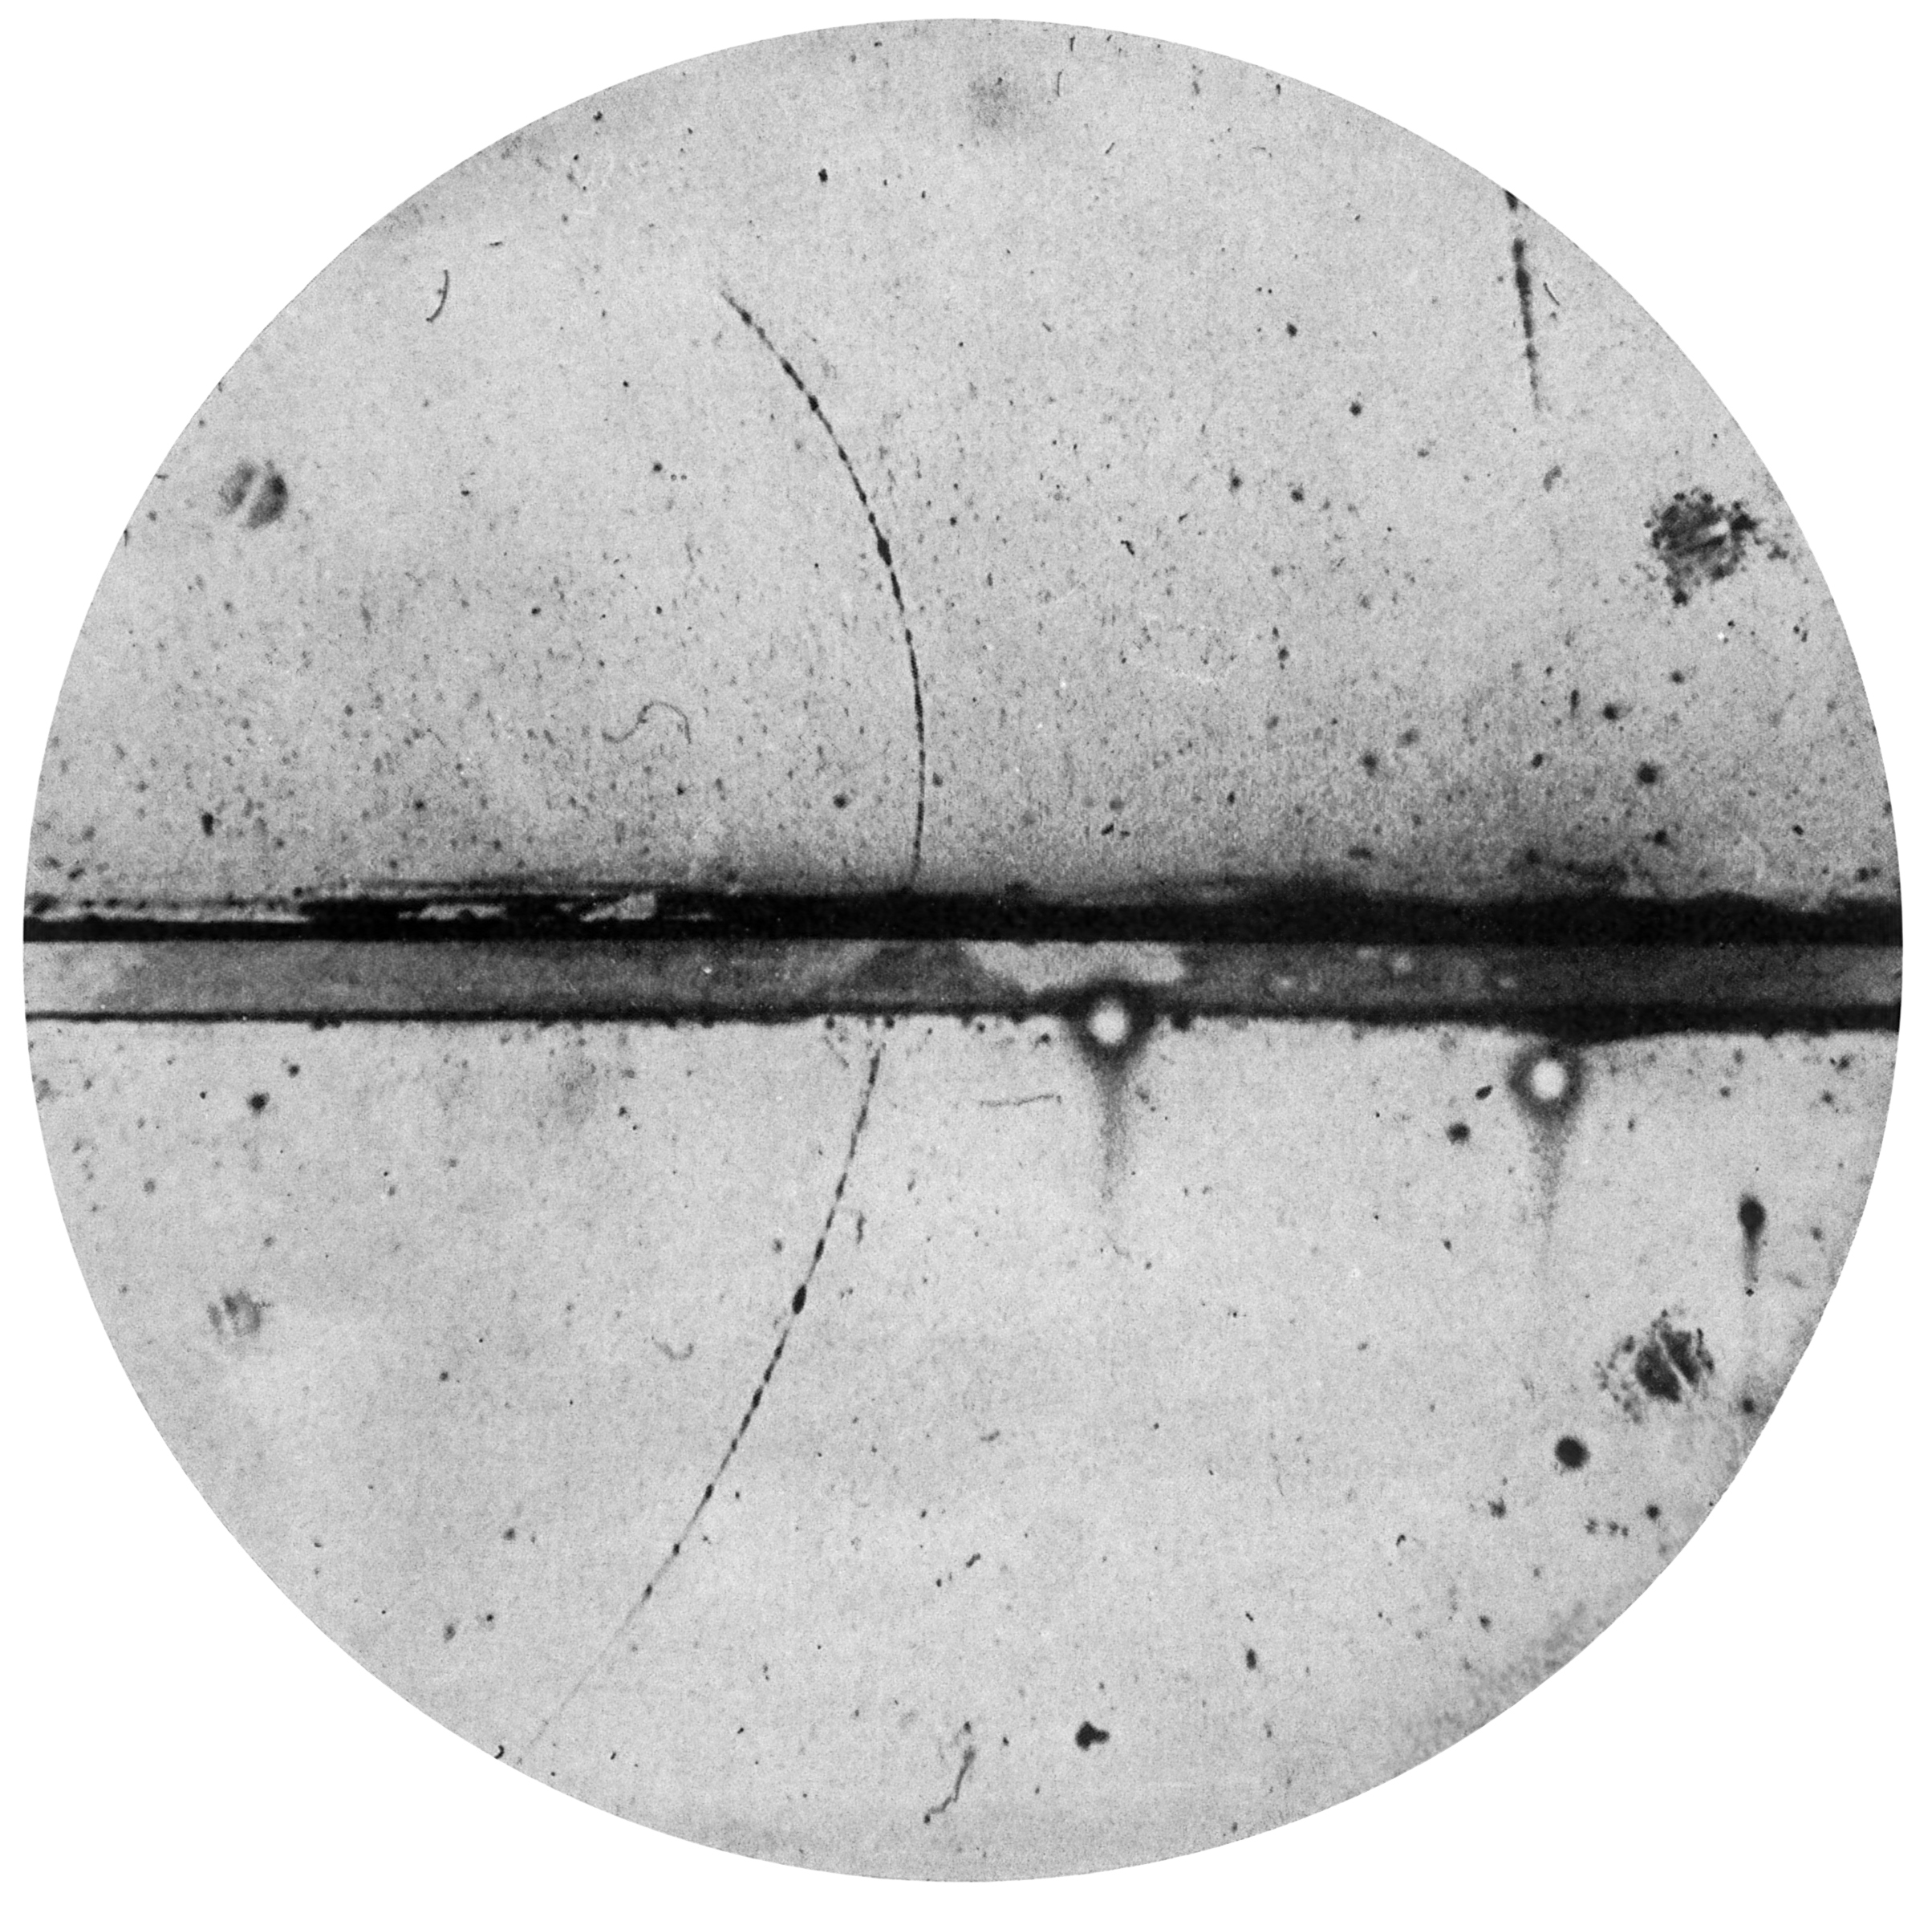 Anderson's picture of a positron's path. It passed through a lead plate (center) and curved to the left, indicating it had a + charge